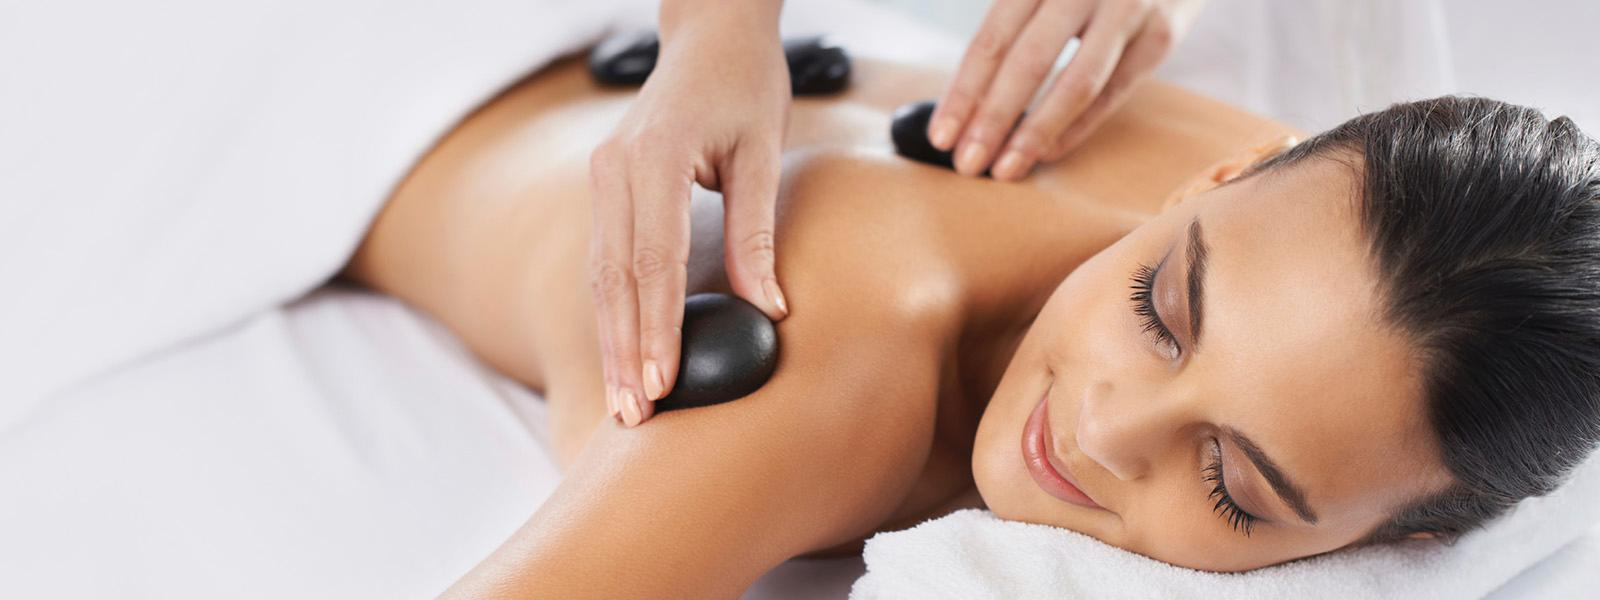 Signature Hot Stone Massage the best in Royersford servicing Collegeville PA